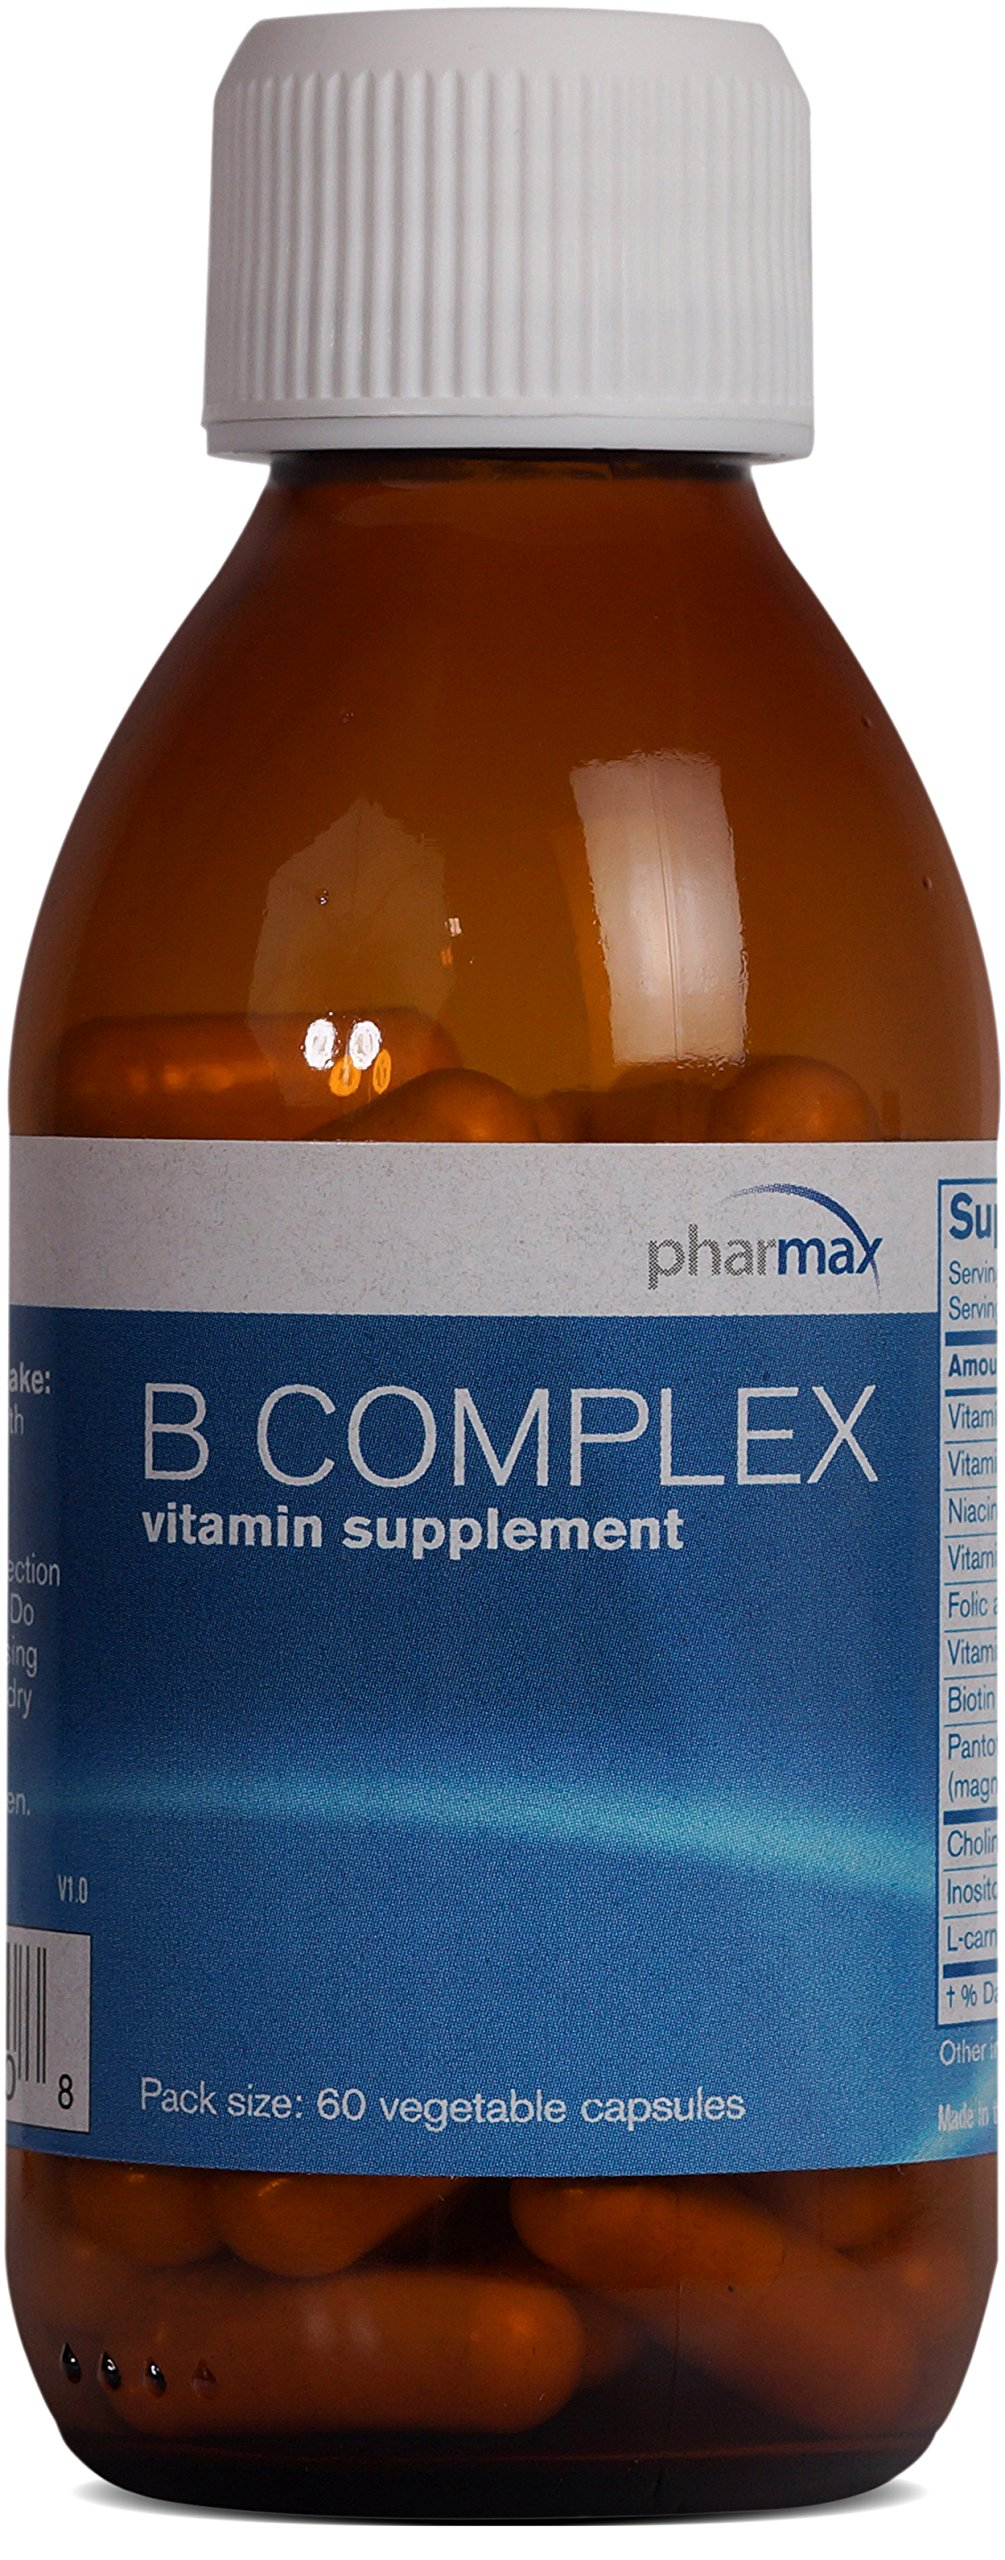 Pharmax - B Complex - Supports Energy, Nerves, Blood Cells, and Tissue Formation* - 60 Capsules